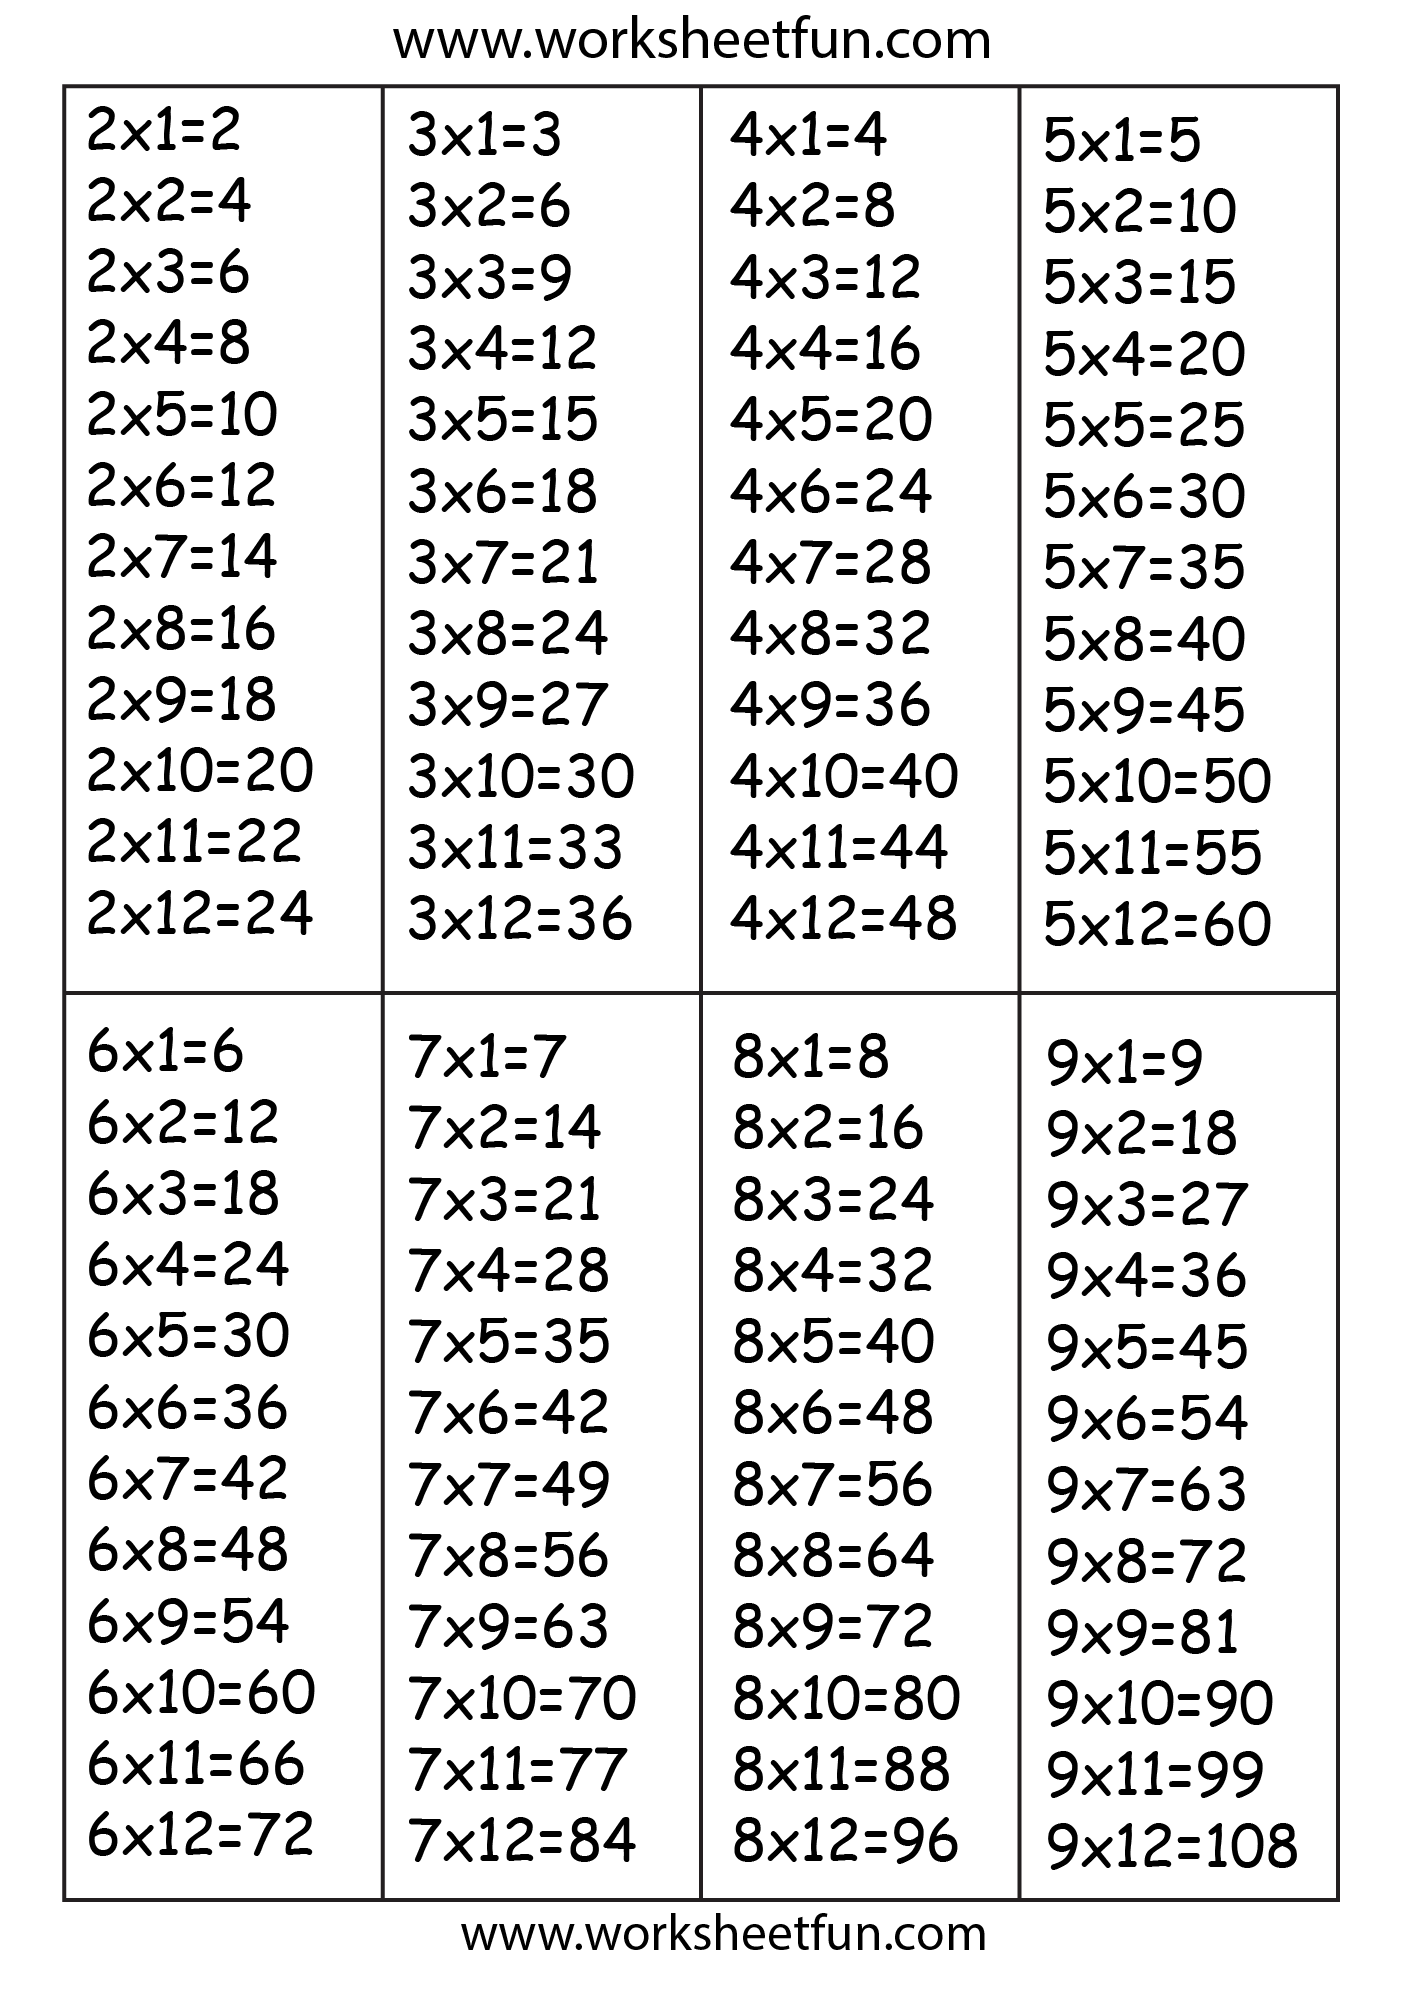 Times Table Chart 2 3 4 5 6 7 8 9 Times Table Chart Times Tables Worksheets Multiplication Chart